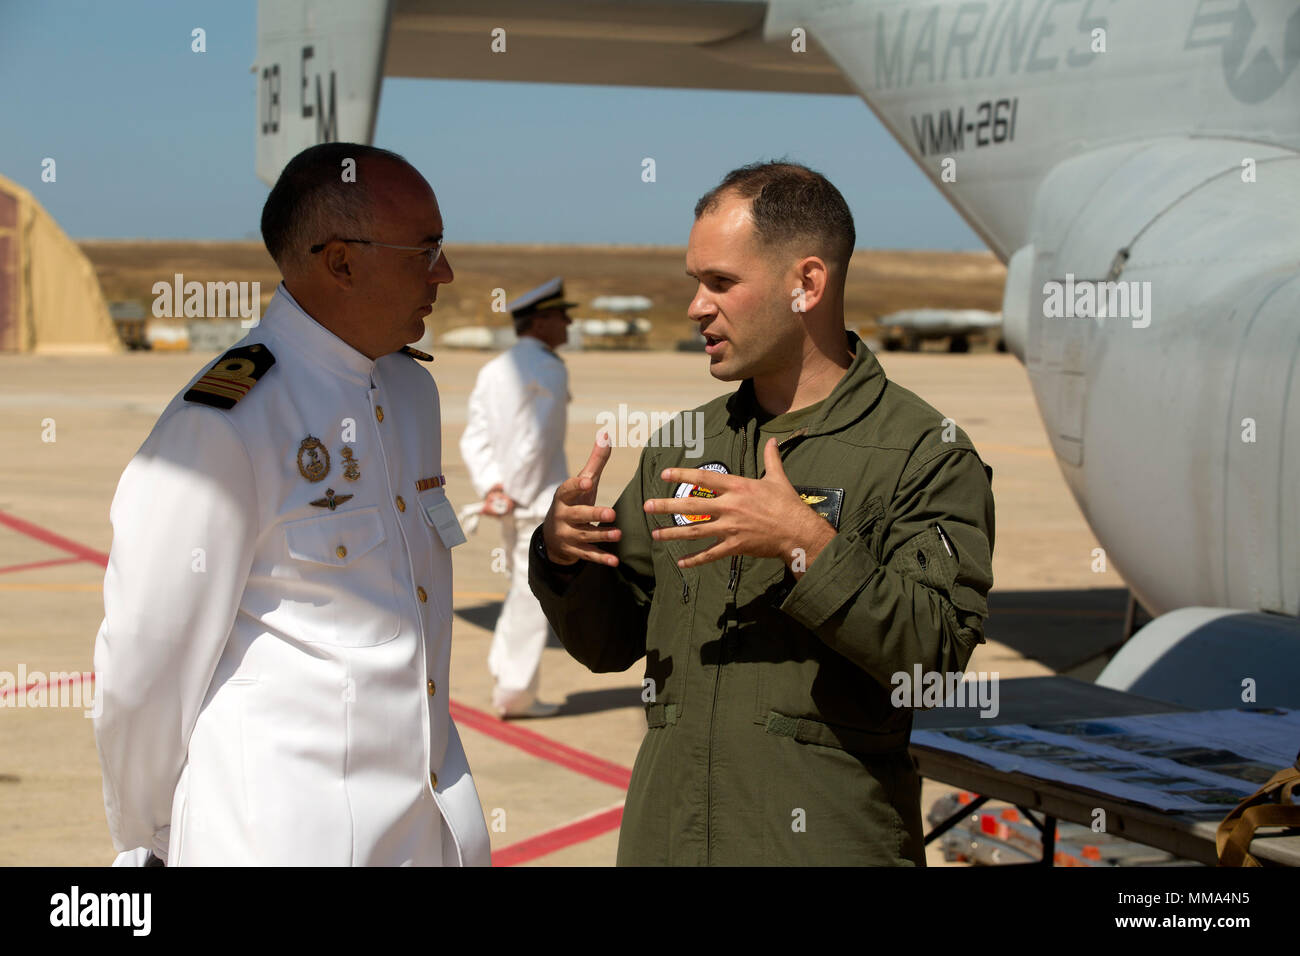 Captain Jonathan D. Hoy, an MV-22B Osprey pilot with Special Purpose Marine Air-Ground Task force-Crisis Response-Africa aviation combat element, speaks with a member of the Spanish Navy about the Osprey's capabilities during the Spanish military's airshow at Naval Station Rota, Spain, Sept. 15, 2017. The airshow commemorated the 100-year anniversary of Spanish aviation. (U.S. Marine Corps Photo by SSgt. Kenneth K. Trotter Jr. - Stock Image